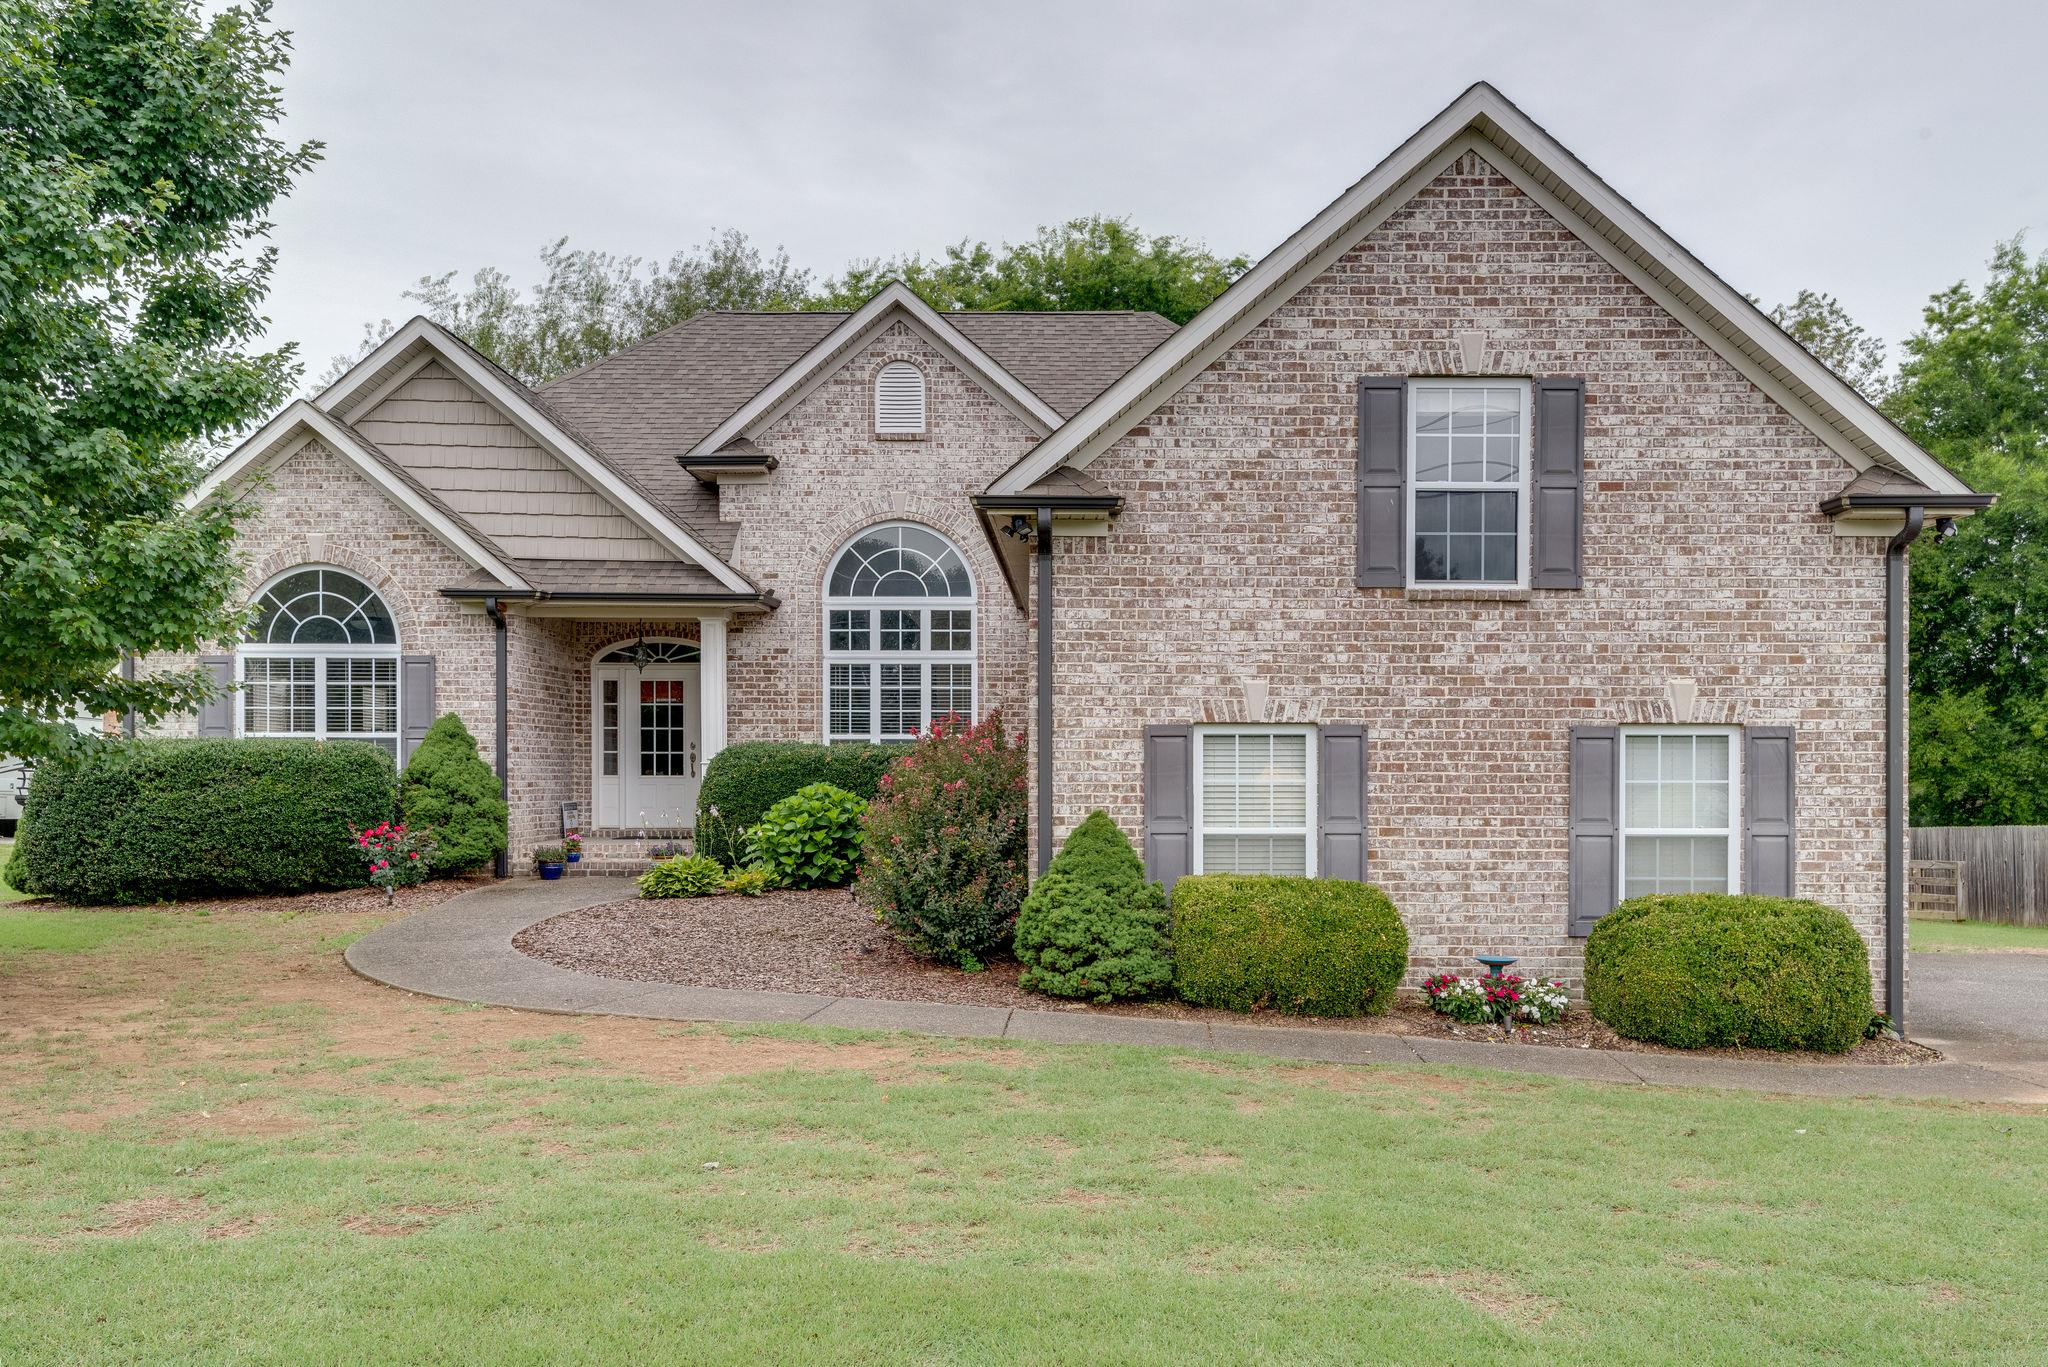 7113 Donald Wilson Dr, Fairview in Williamson County County, TN 37062 Home for Sale